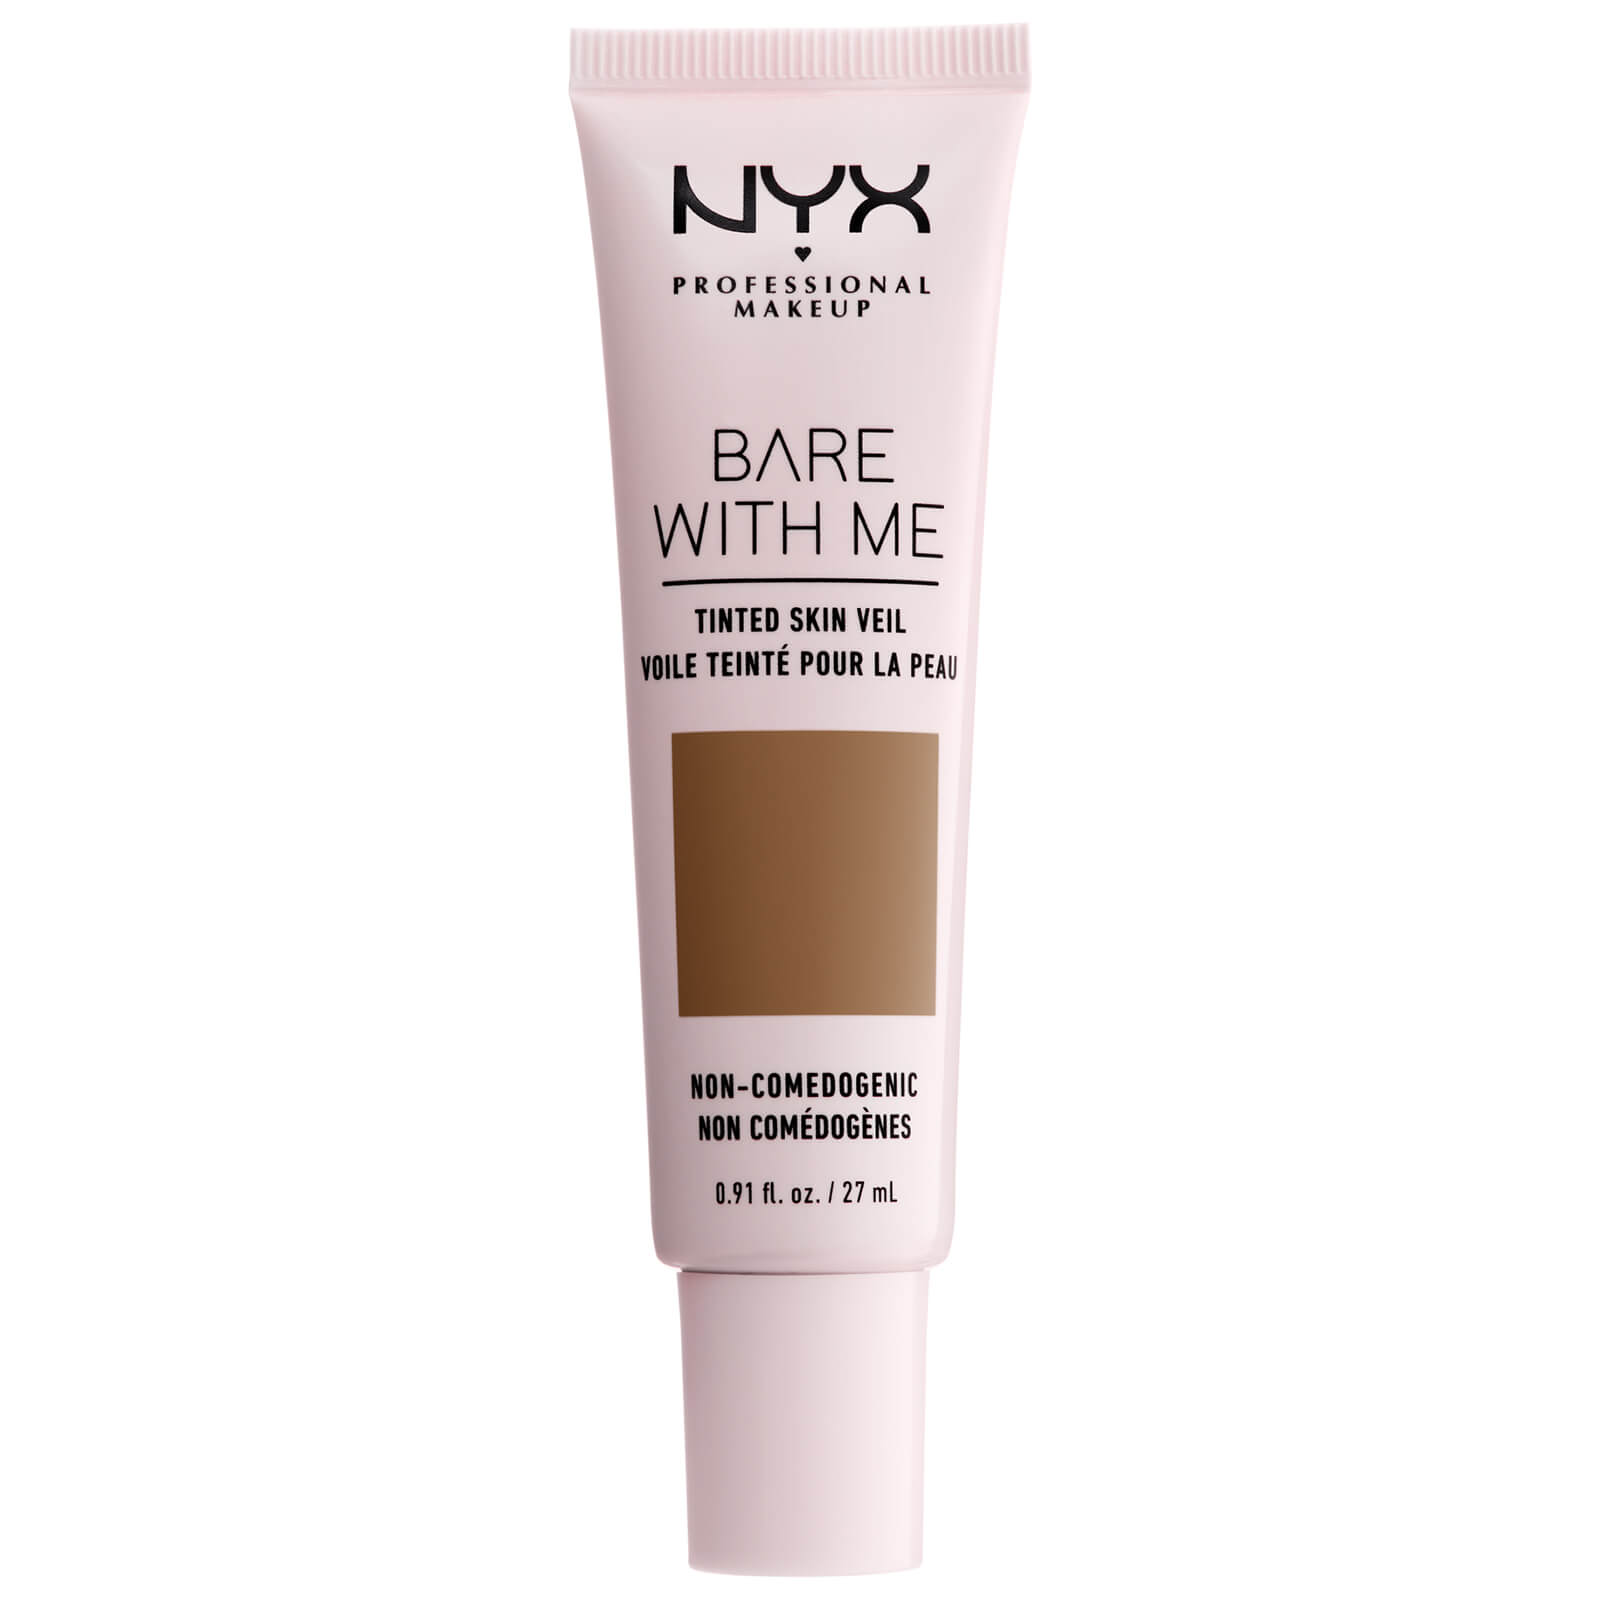 NYX Professional Makeup Bare With Me Tinted Skin Veil BB Cream 27ml (Various Shades) - Nutmeg Sienna